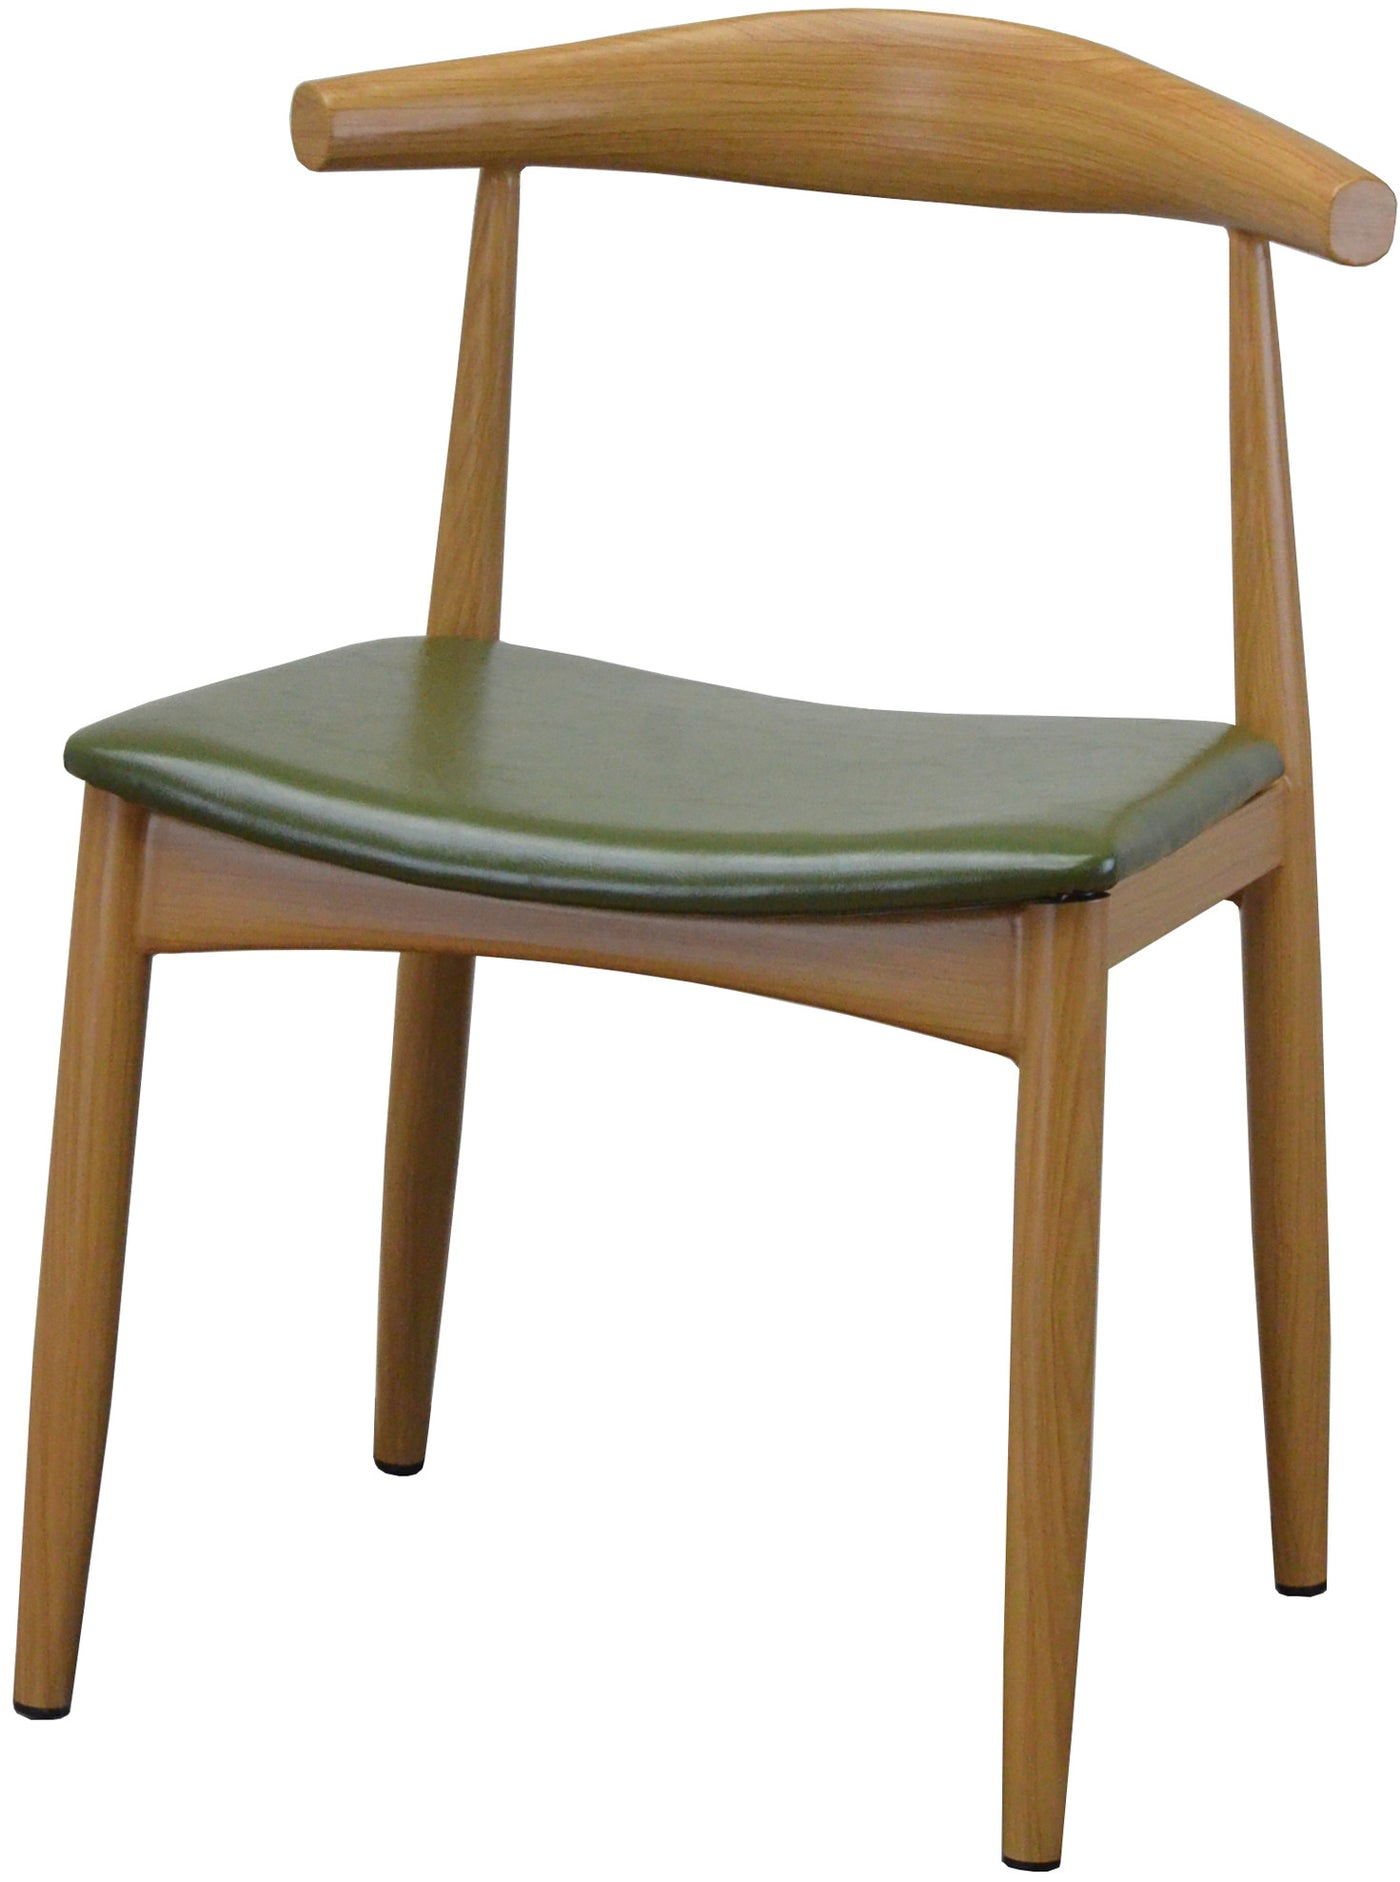 DF3425-Natural Finish Steel Frame Dining Chair – Absolute Seating